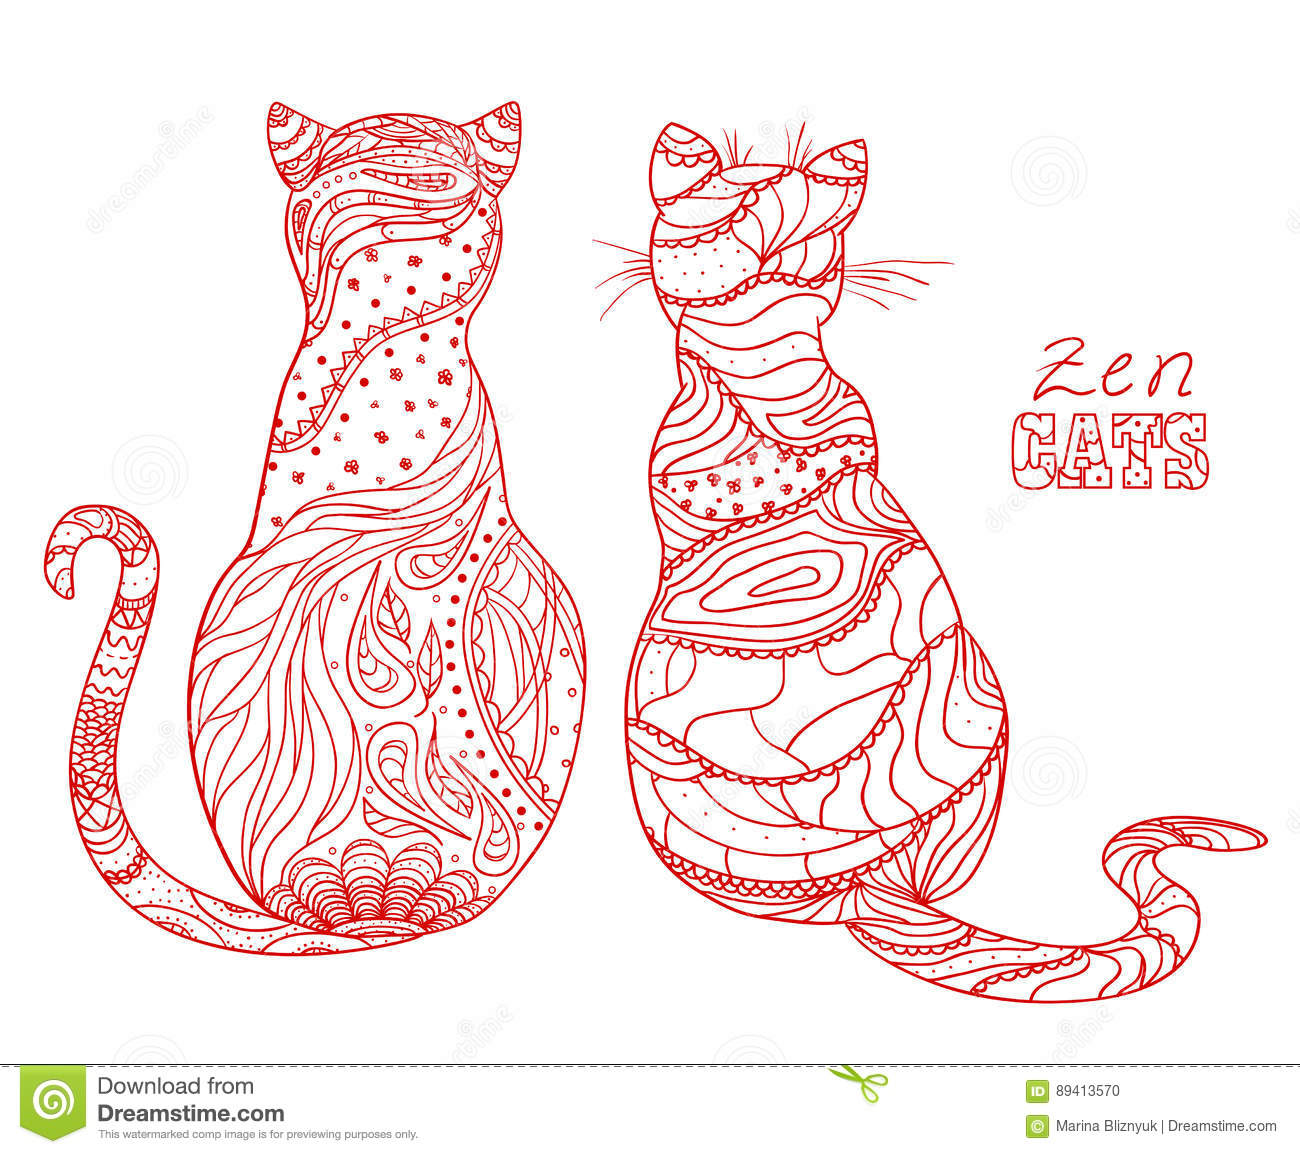 Gatos Arte do zen